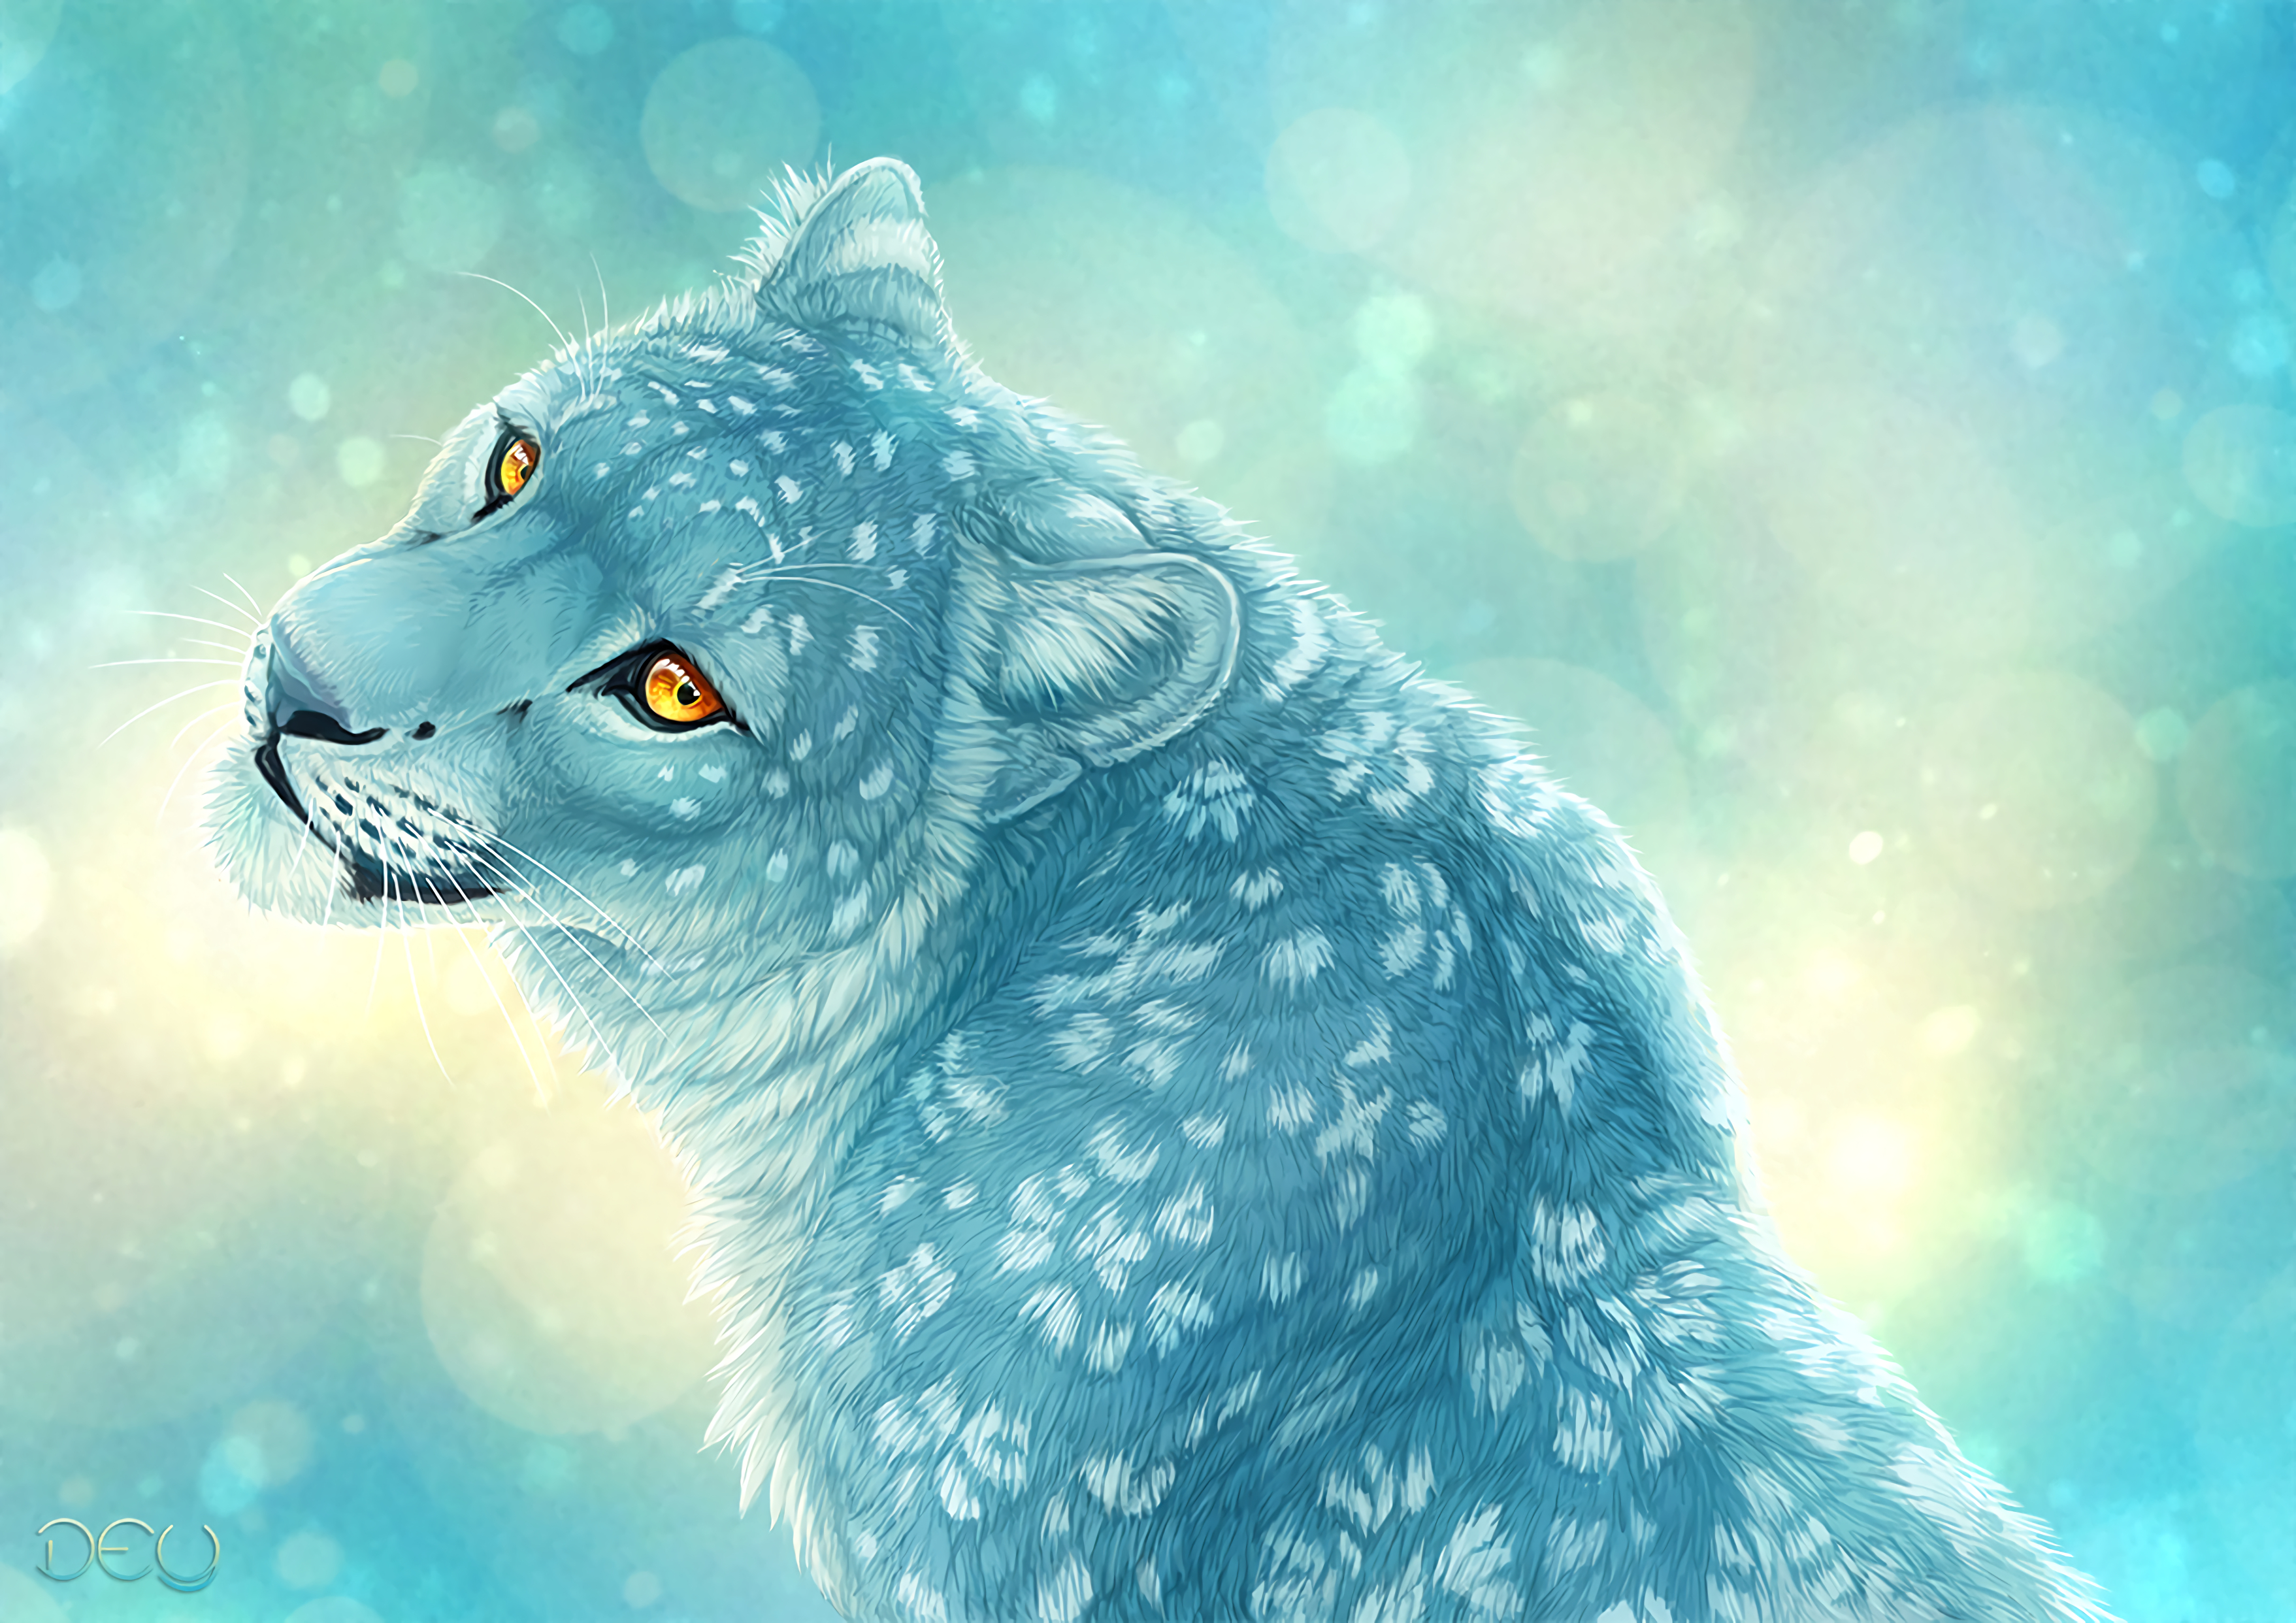 112200 download wallpaper Leopard, Art, Irbis, Snow Leopard screensavers and pictures for free